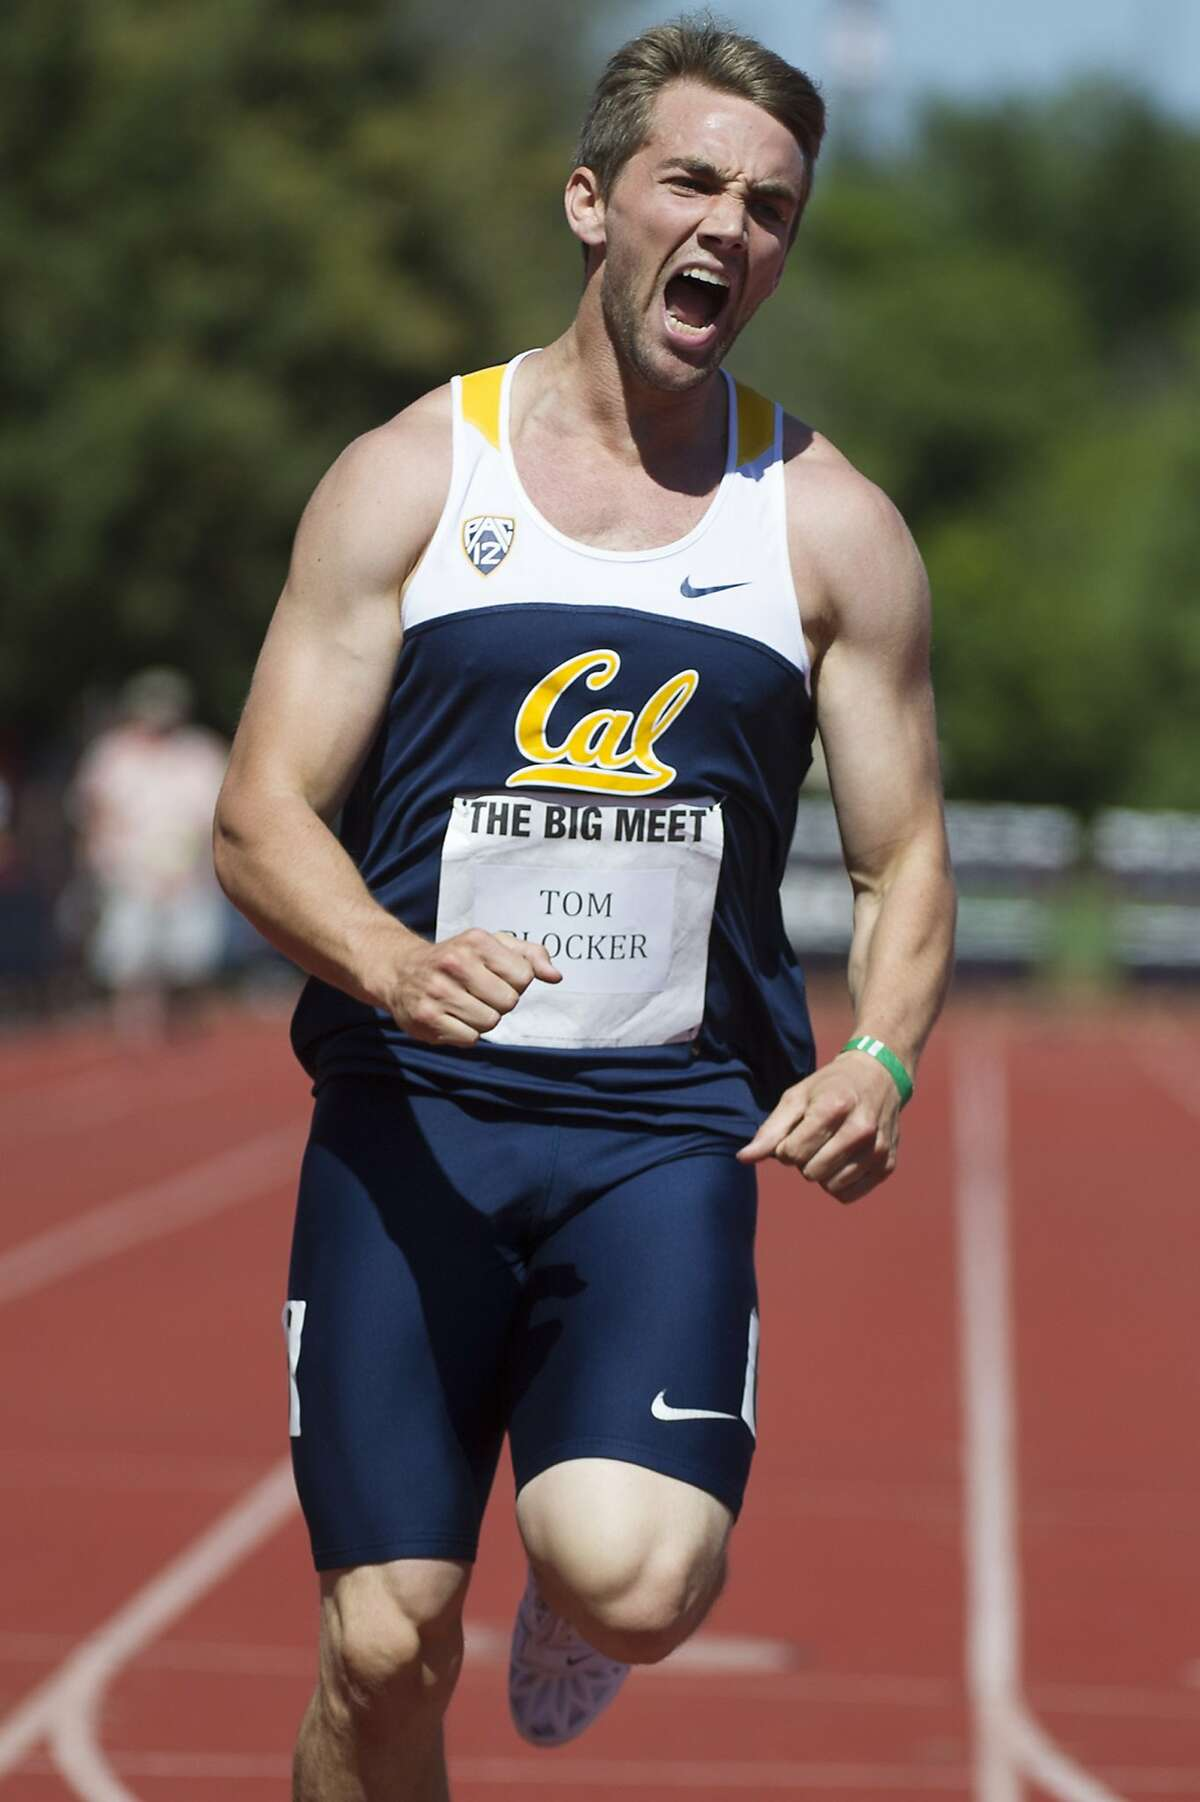 Tom Blocker reacts after winning the men's 200 meter dash during the 118th Big Meet Cal vs Stanford at Stanford University in Stanford, Calif. on April 20,2013.